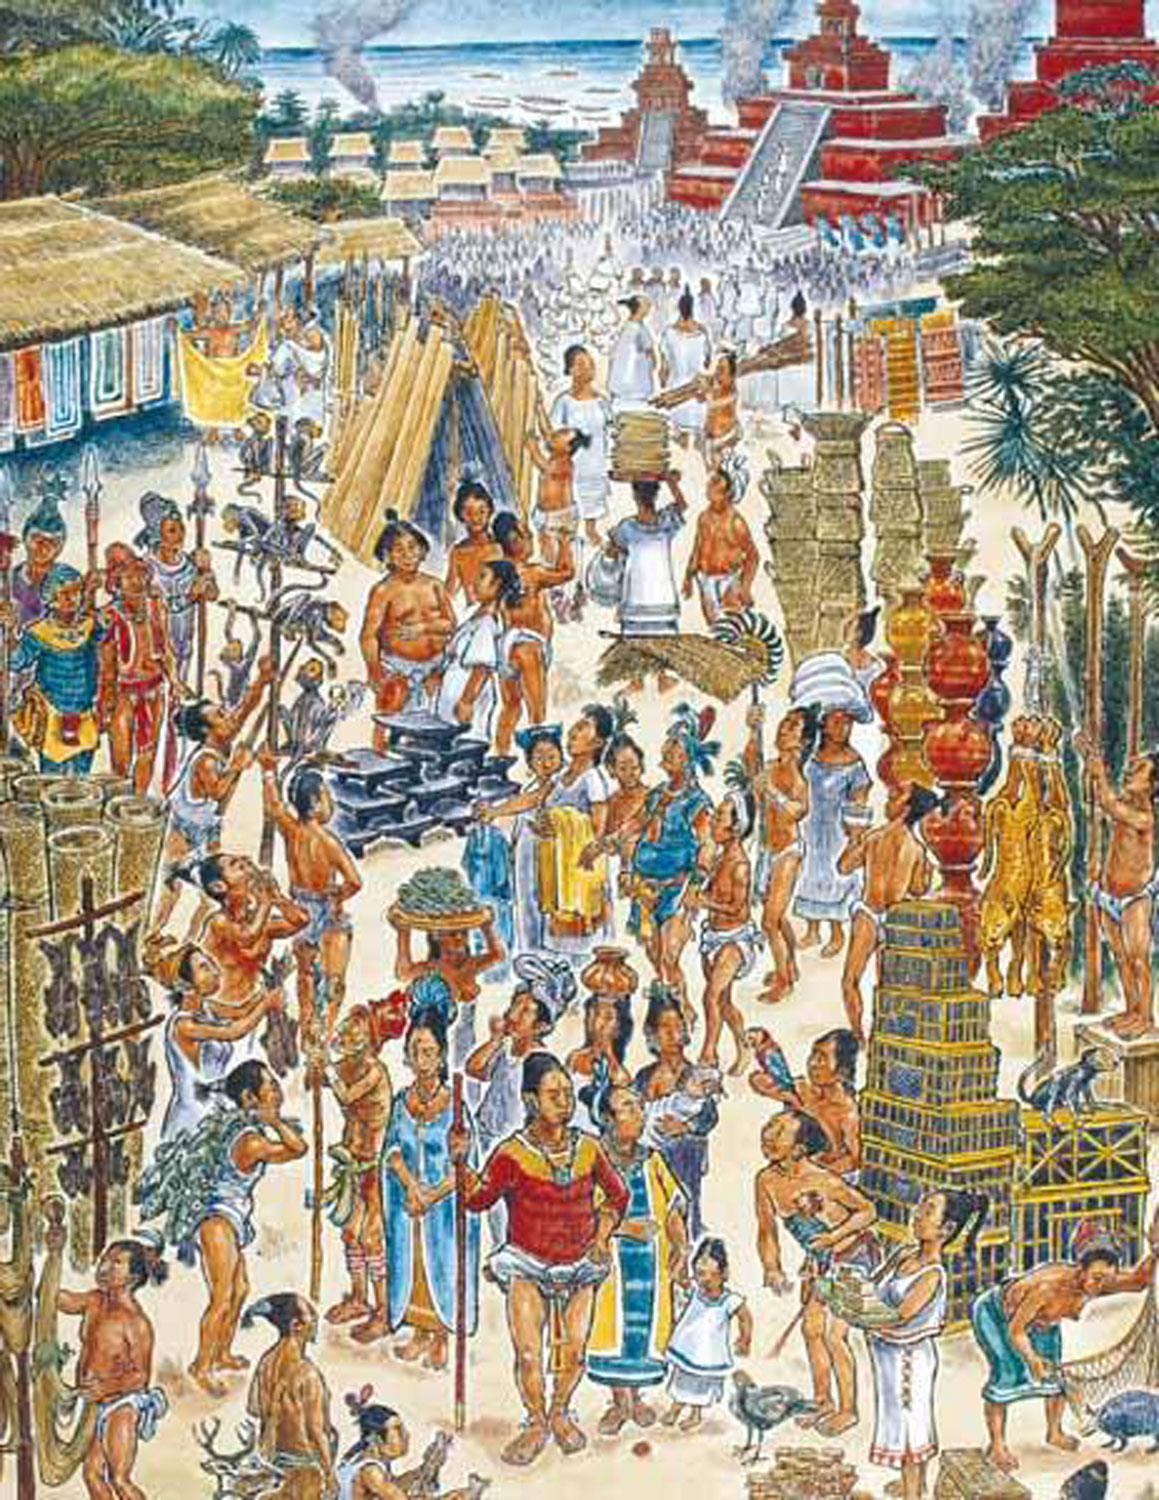 An illustration of what a trading coastal Maya city looked like. From the book Excavations of an Early Shell Midden on Isla Cancún.